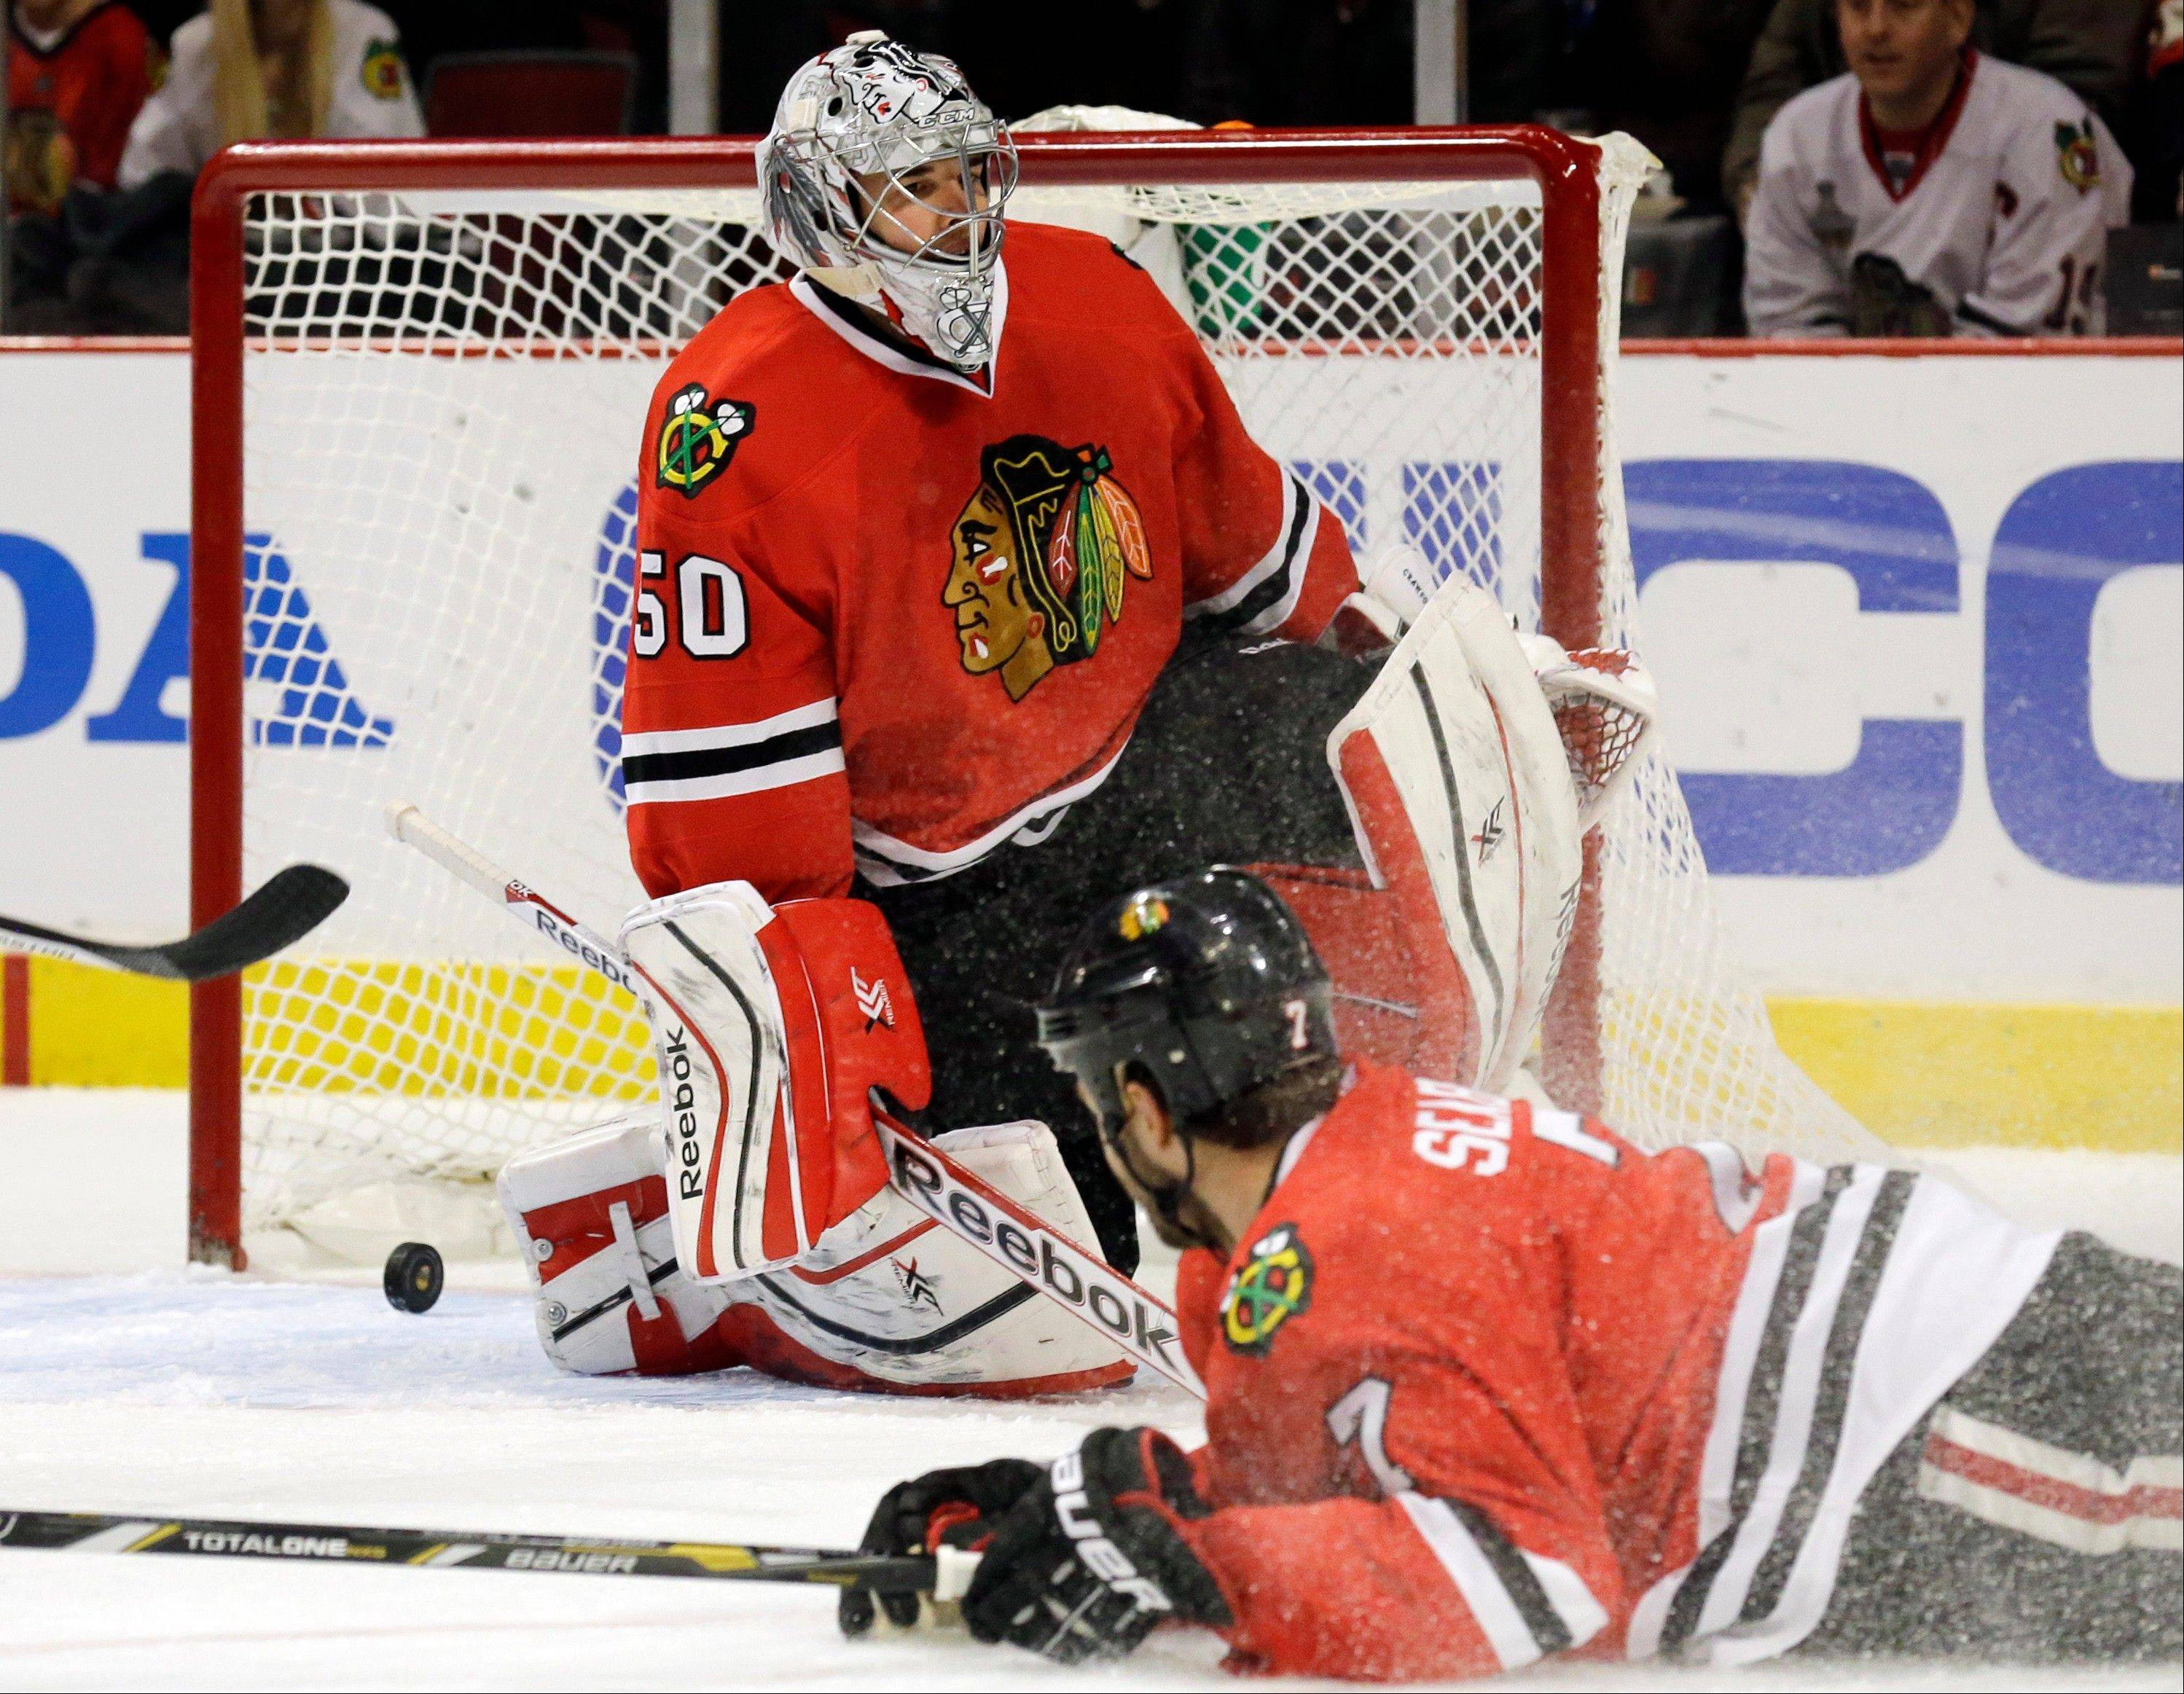 Chicago Blackhawks goalie Corey Crawford (50) reacts after New York Rangers' Brad Richards (not shown) scored a goal during the first period of an NHL hockey game in Chicago, Wednesday, Jan. 8, 2014. (AP Photo/Nam Y. Huh)